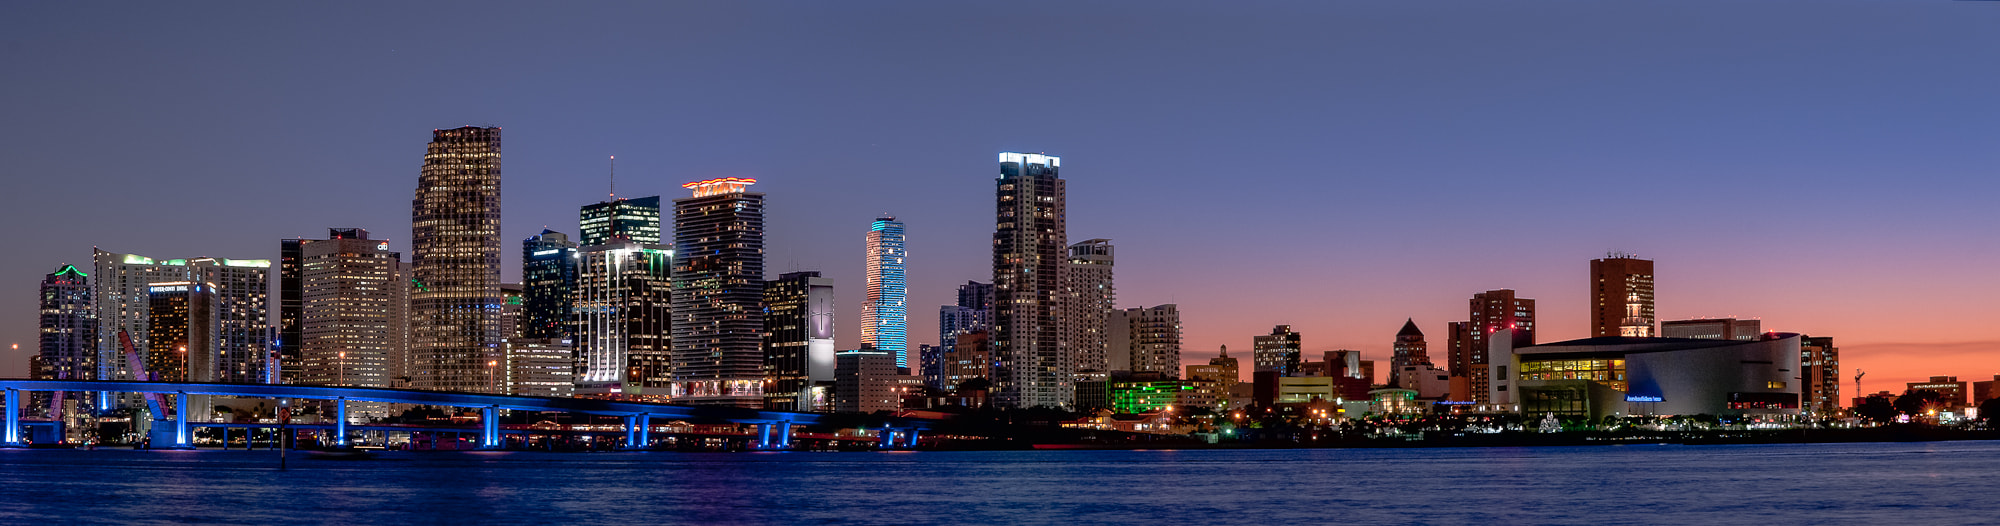 Photograph Downtown Miami by Bob Nocek on 500px